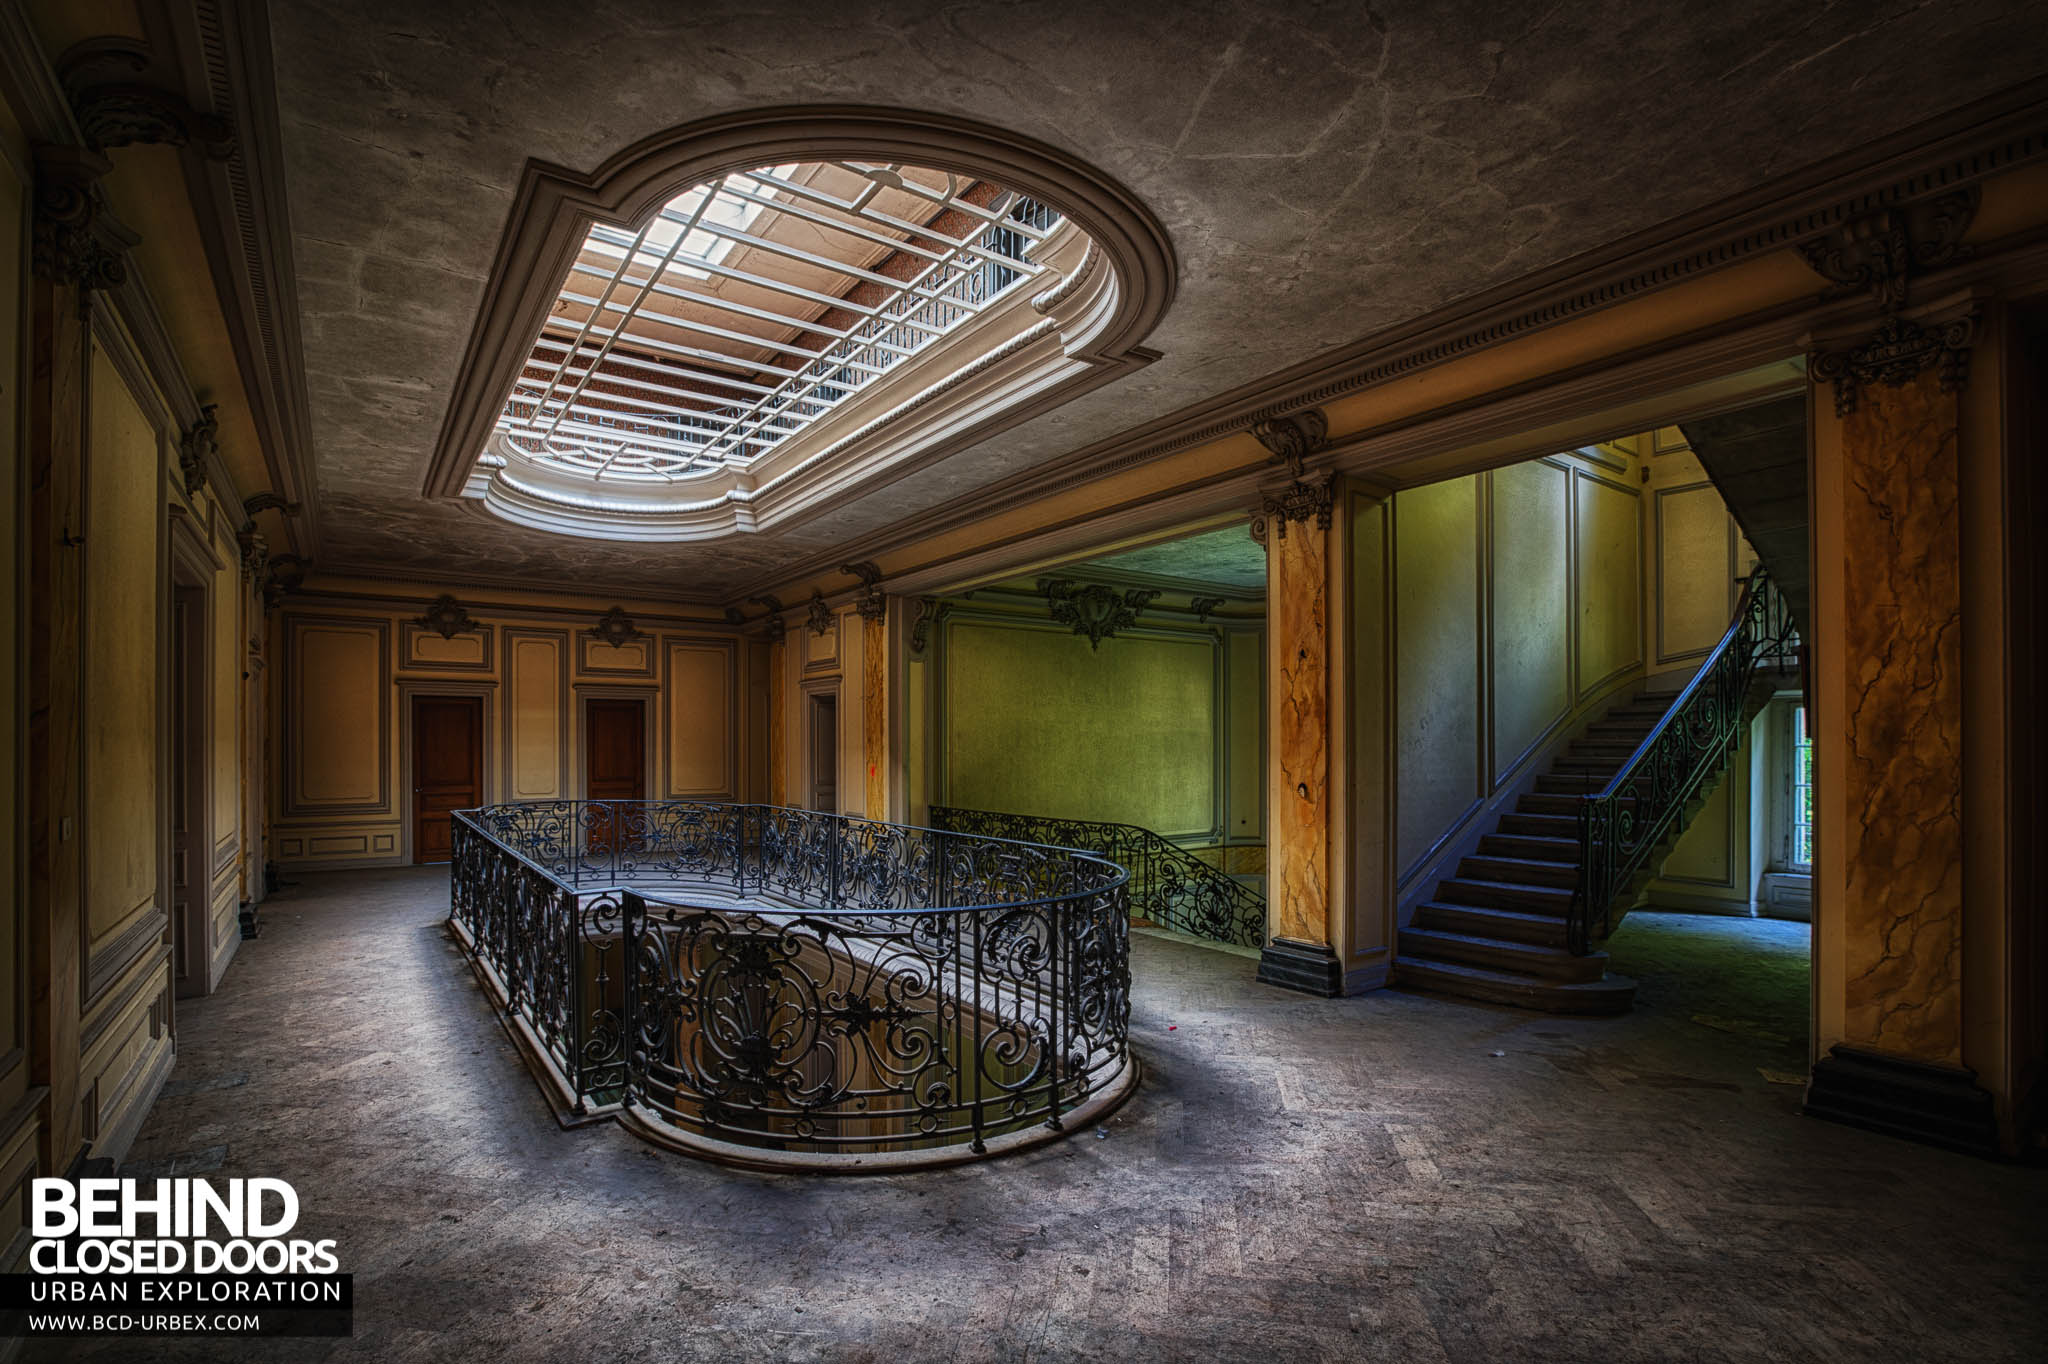 Teau Lumiere France Urbex Behind Closed Doors